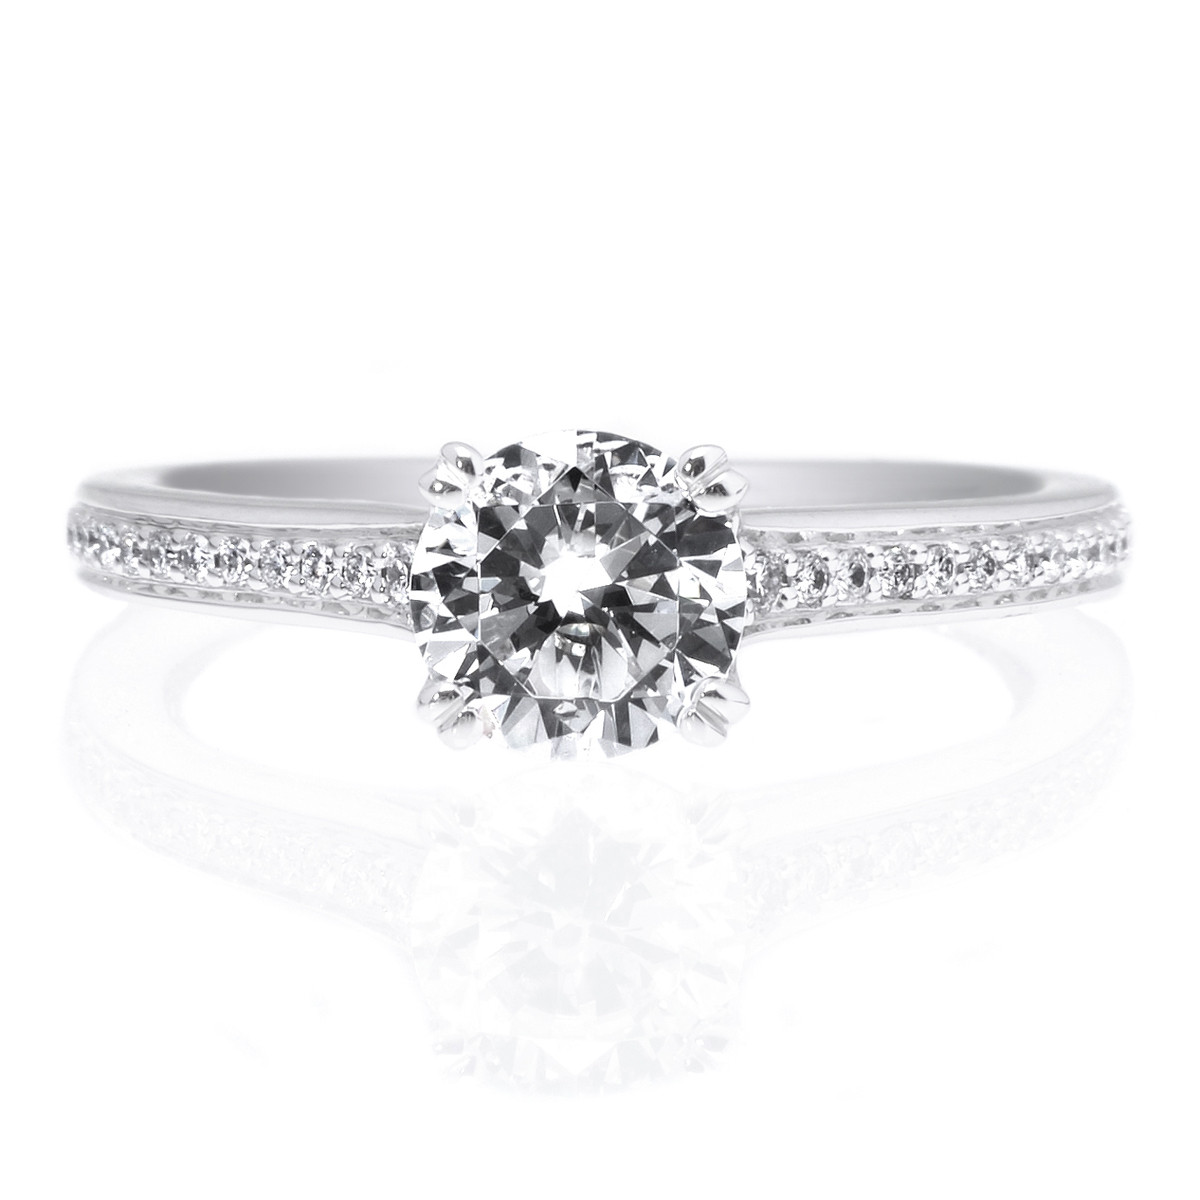 18K White Gold Micropave Diamond Band Engagment Ring with Surprise Diamonds